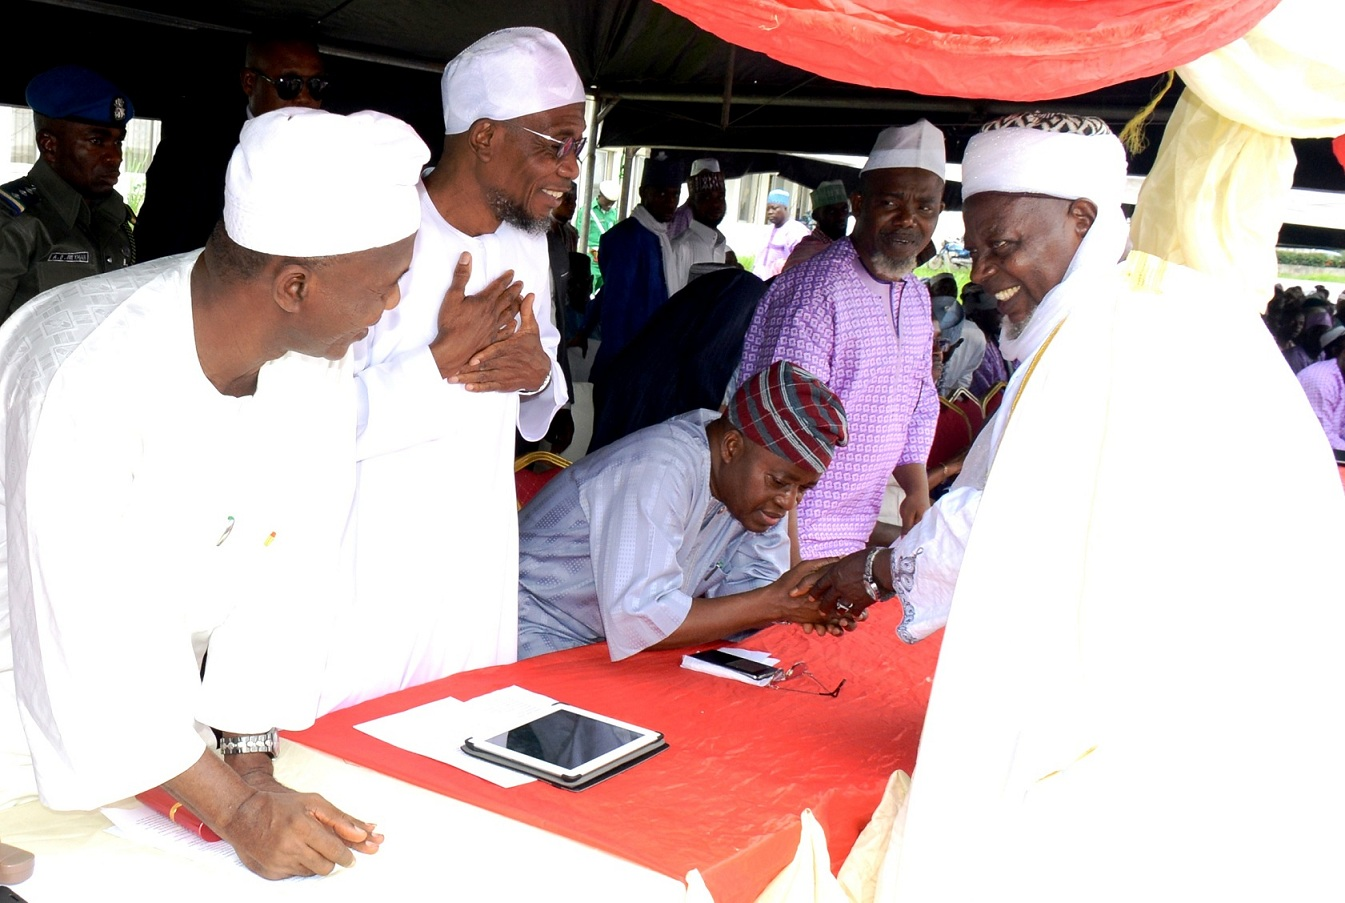 From right, Chief of Imam Osogboland, Sheik Musa Animasahun; Amiru Haji of Osun, Alhaji Sikiru Hassan; Chief of Staff to the Governor, Alhaji Gboyega Oyetola;Governor State of Osun, Ogbeni Rauf Aregbesola and Secretary to State Government, Alhaji Moshood Adeoti, during the Farewell Ceremony of the 2015 Osun Hajj Pilgrims, at Parking Bola Ige House, State Secretariat, Abere on Thursday 13_08_2015.